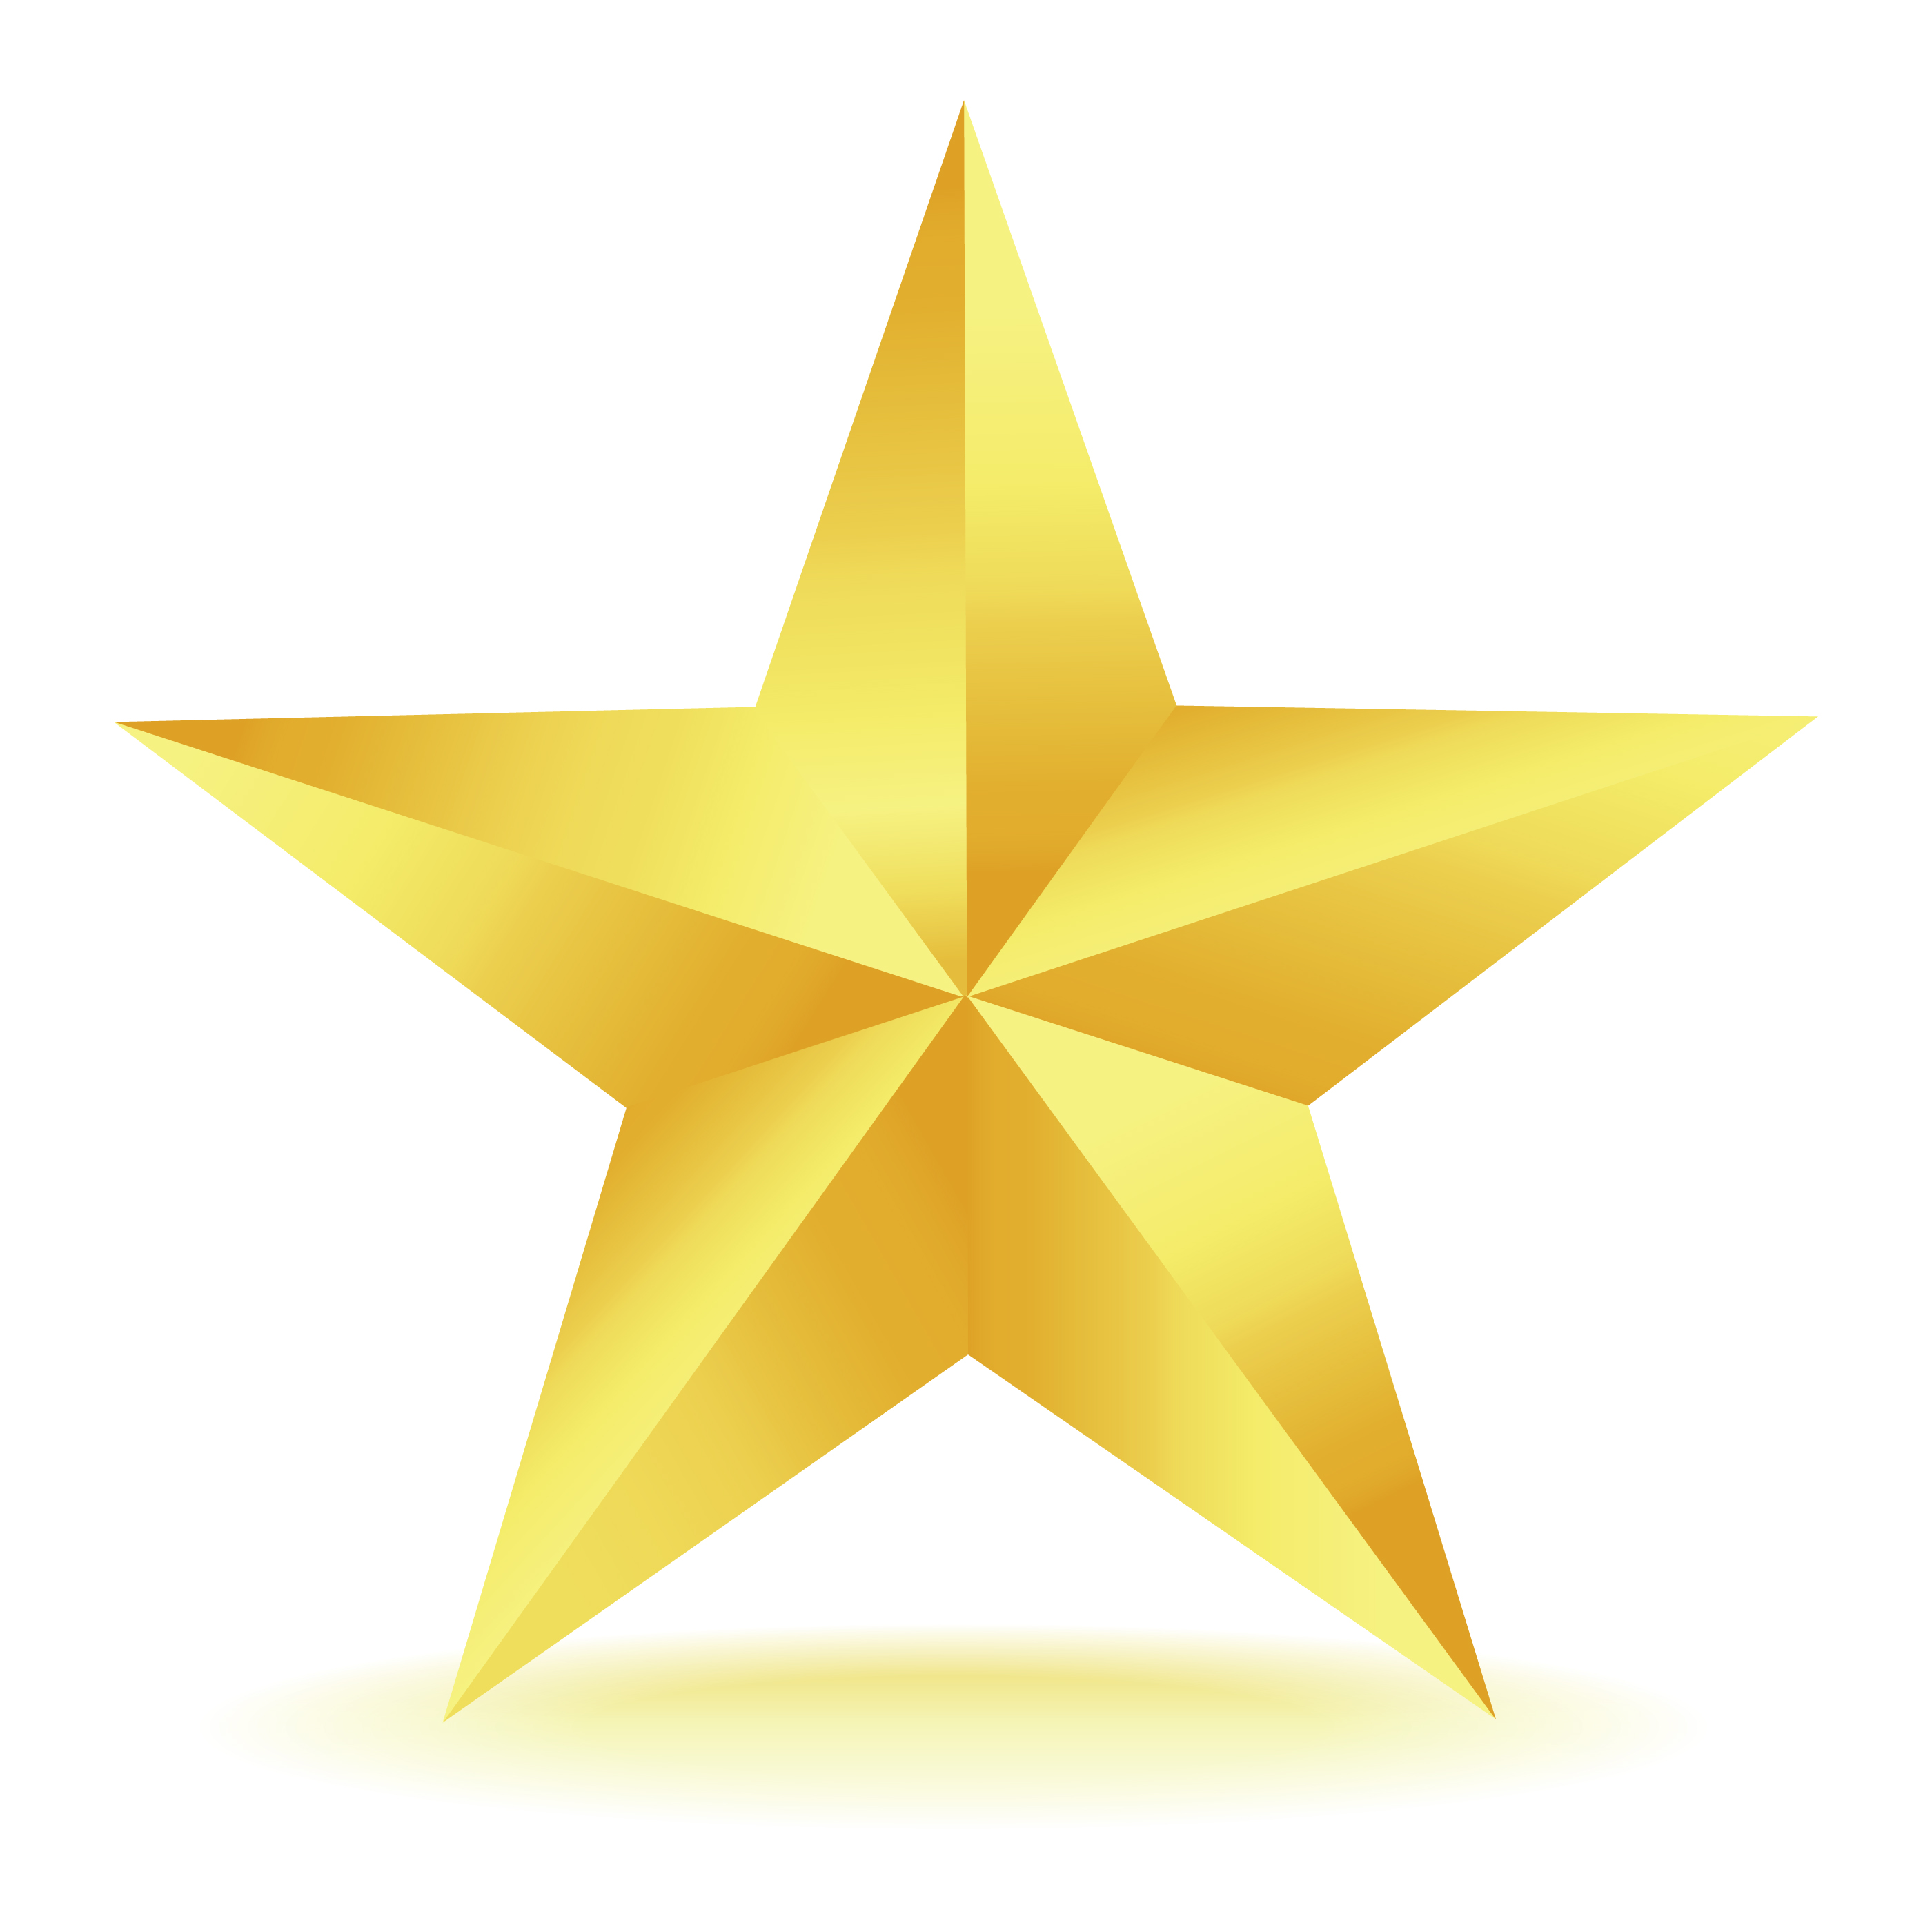 Free Free Star Cliparts, Download Free Clip Art, Free Clip Art on.